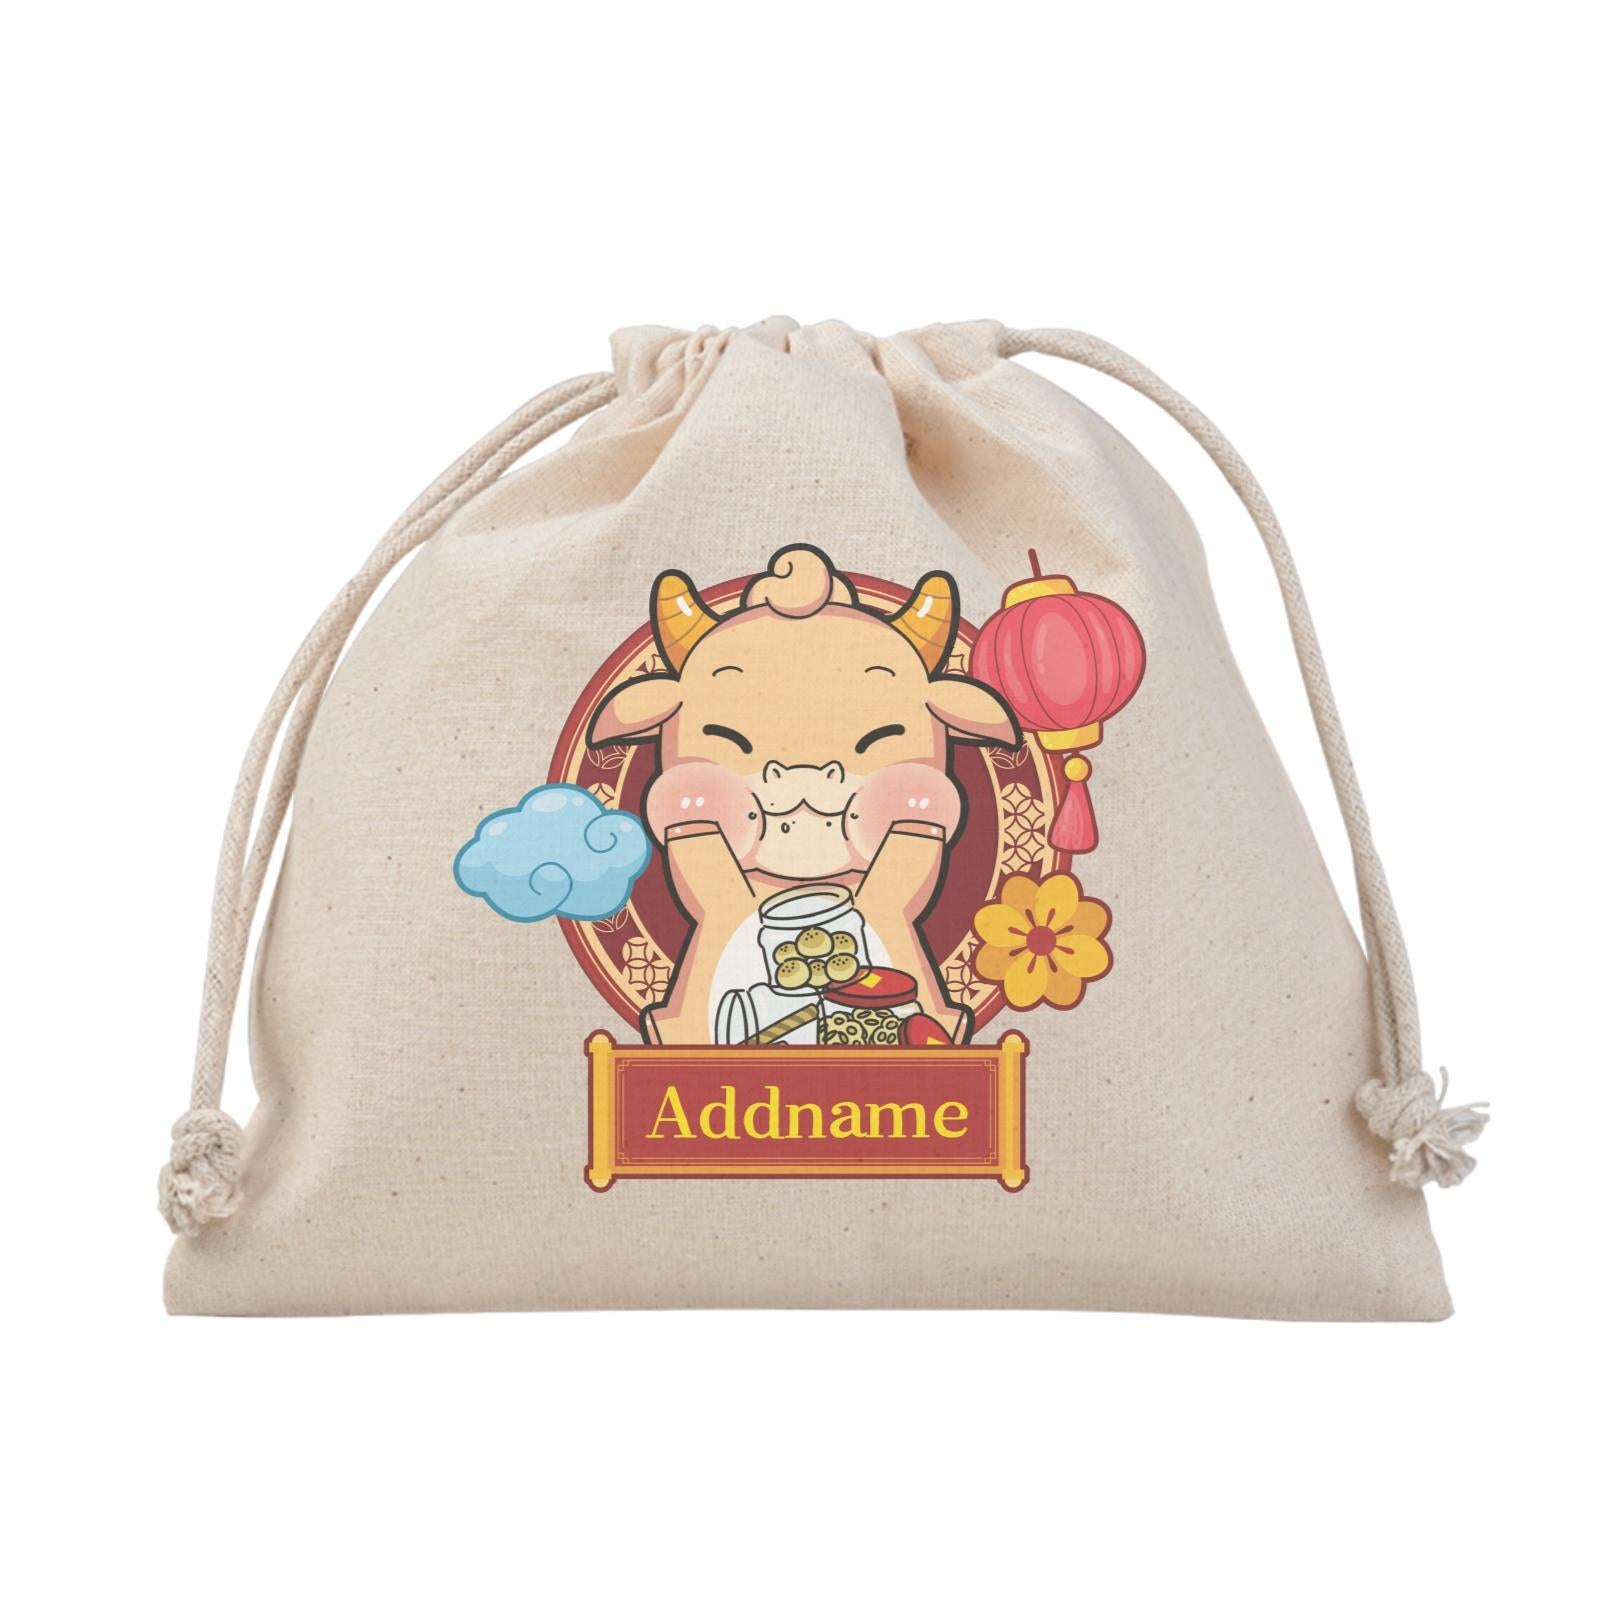 [CNY 2021] Golden Cow with New Year Treats Satchel